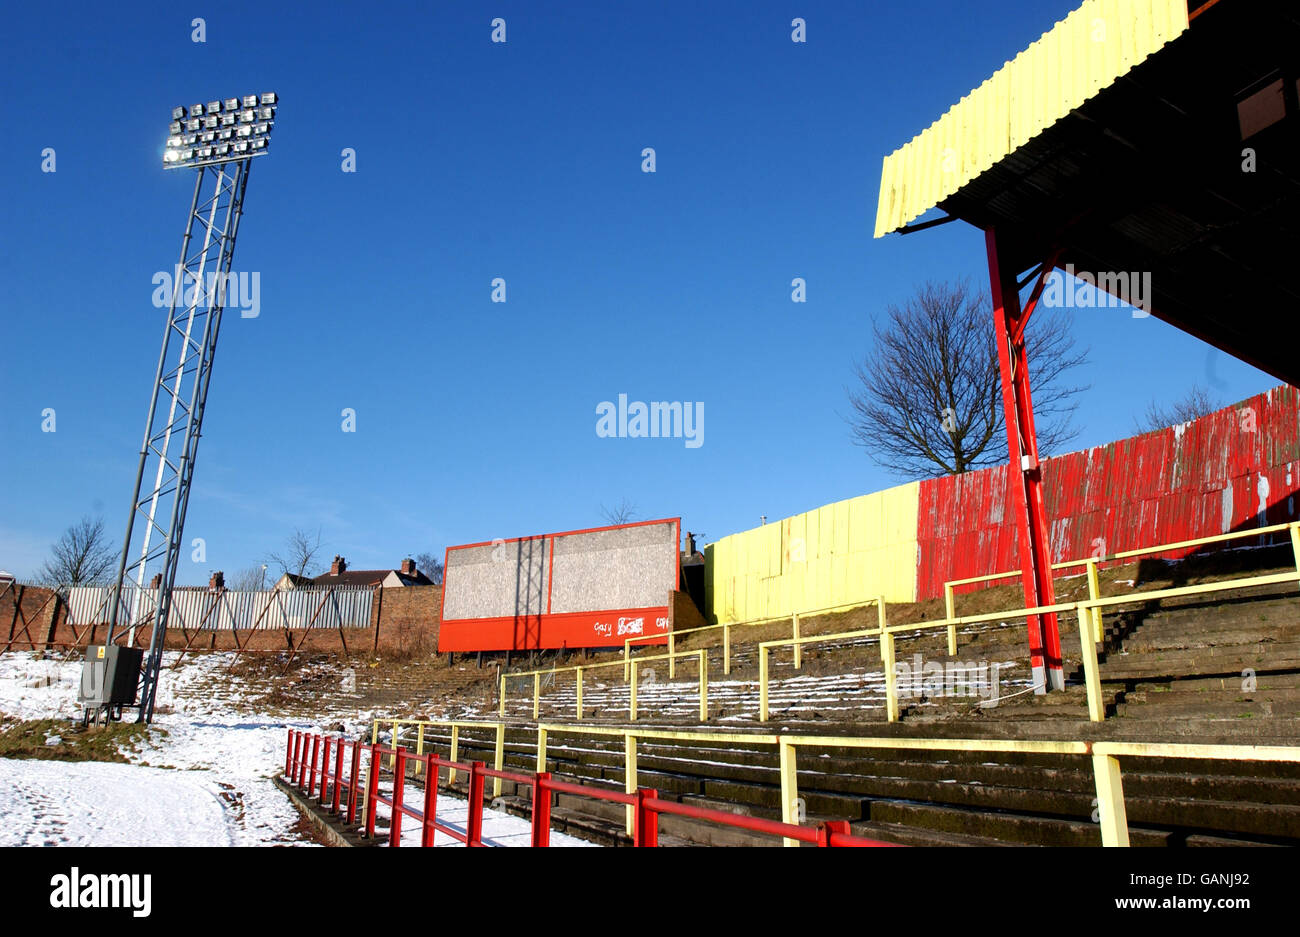 albion rovers cowdenbeath sofascore white sofas leather stock photos and images